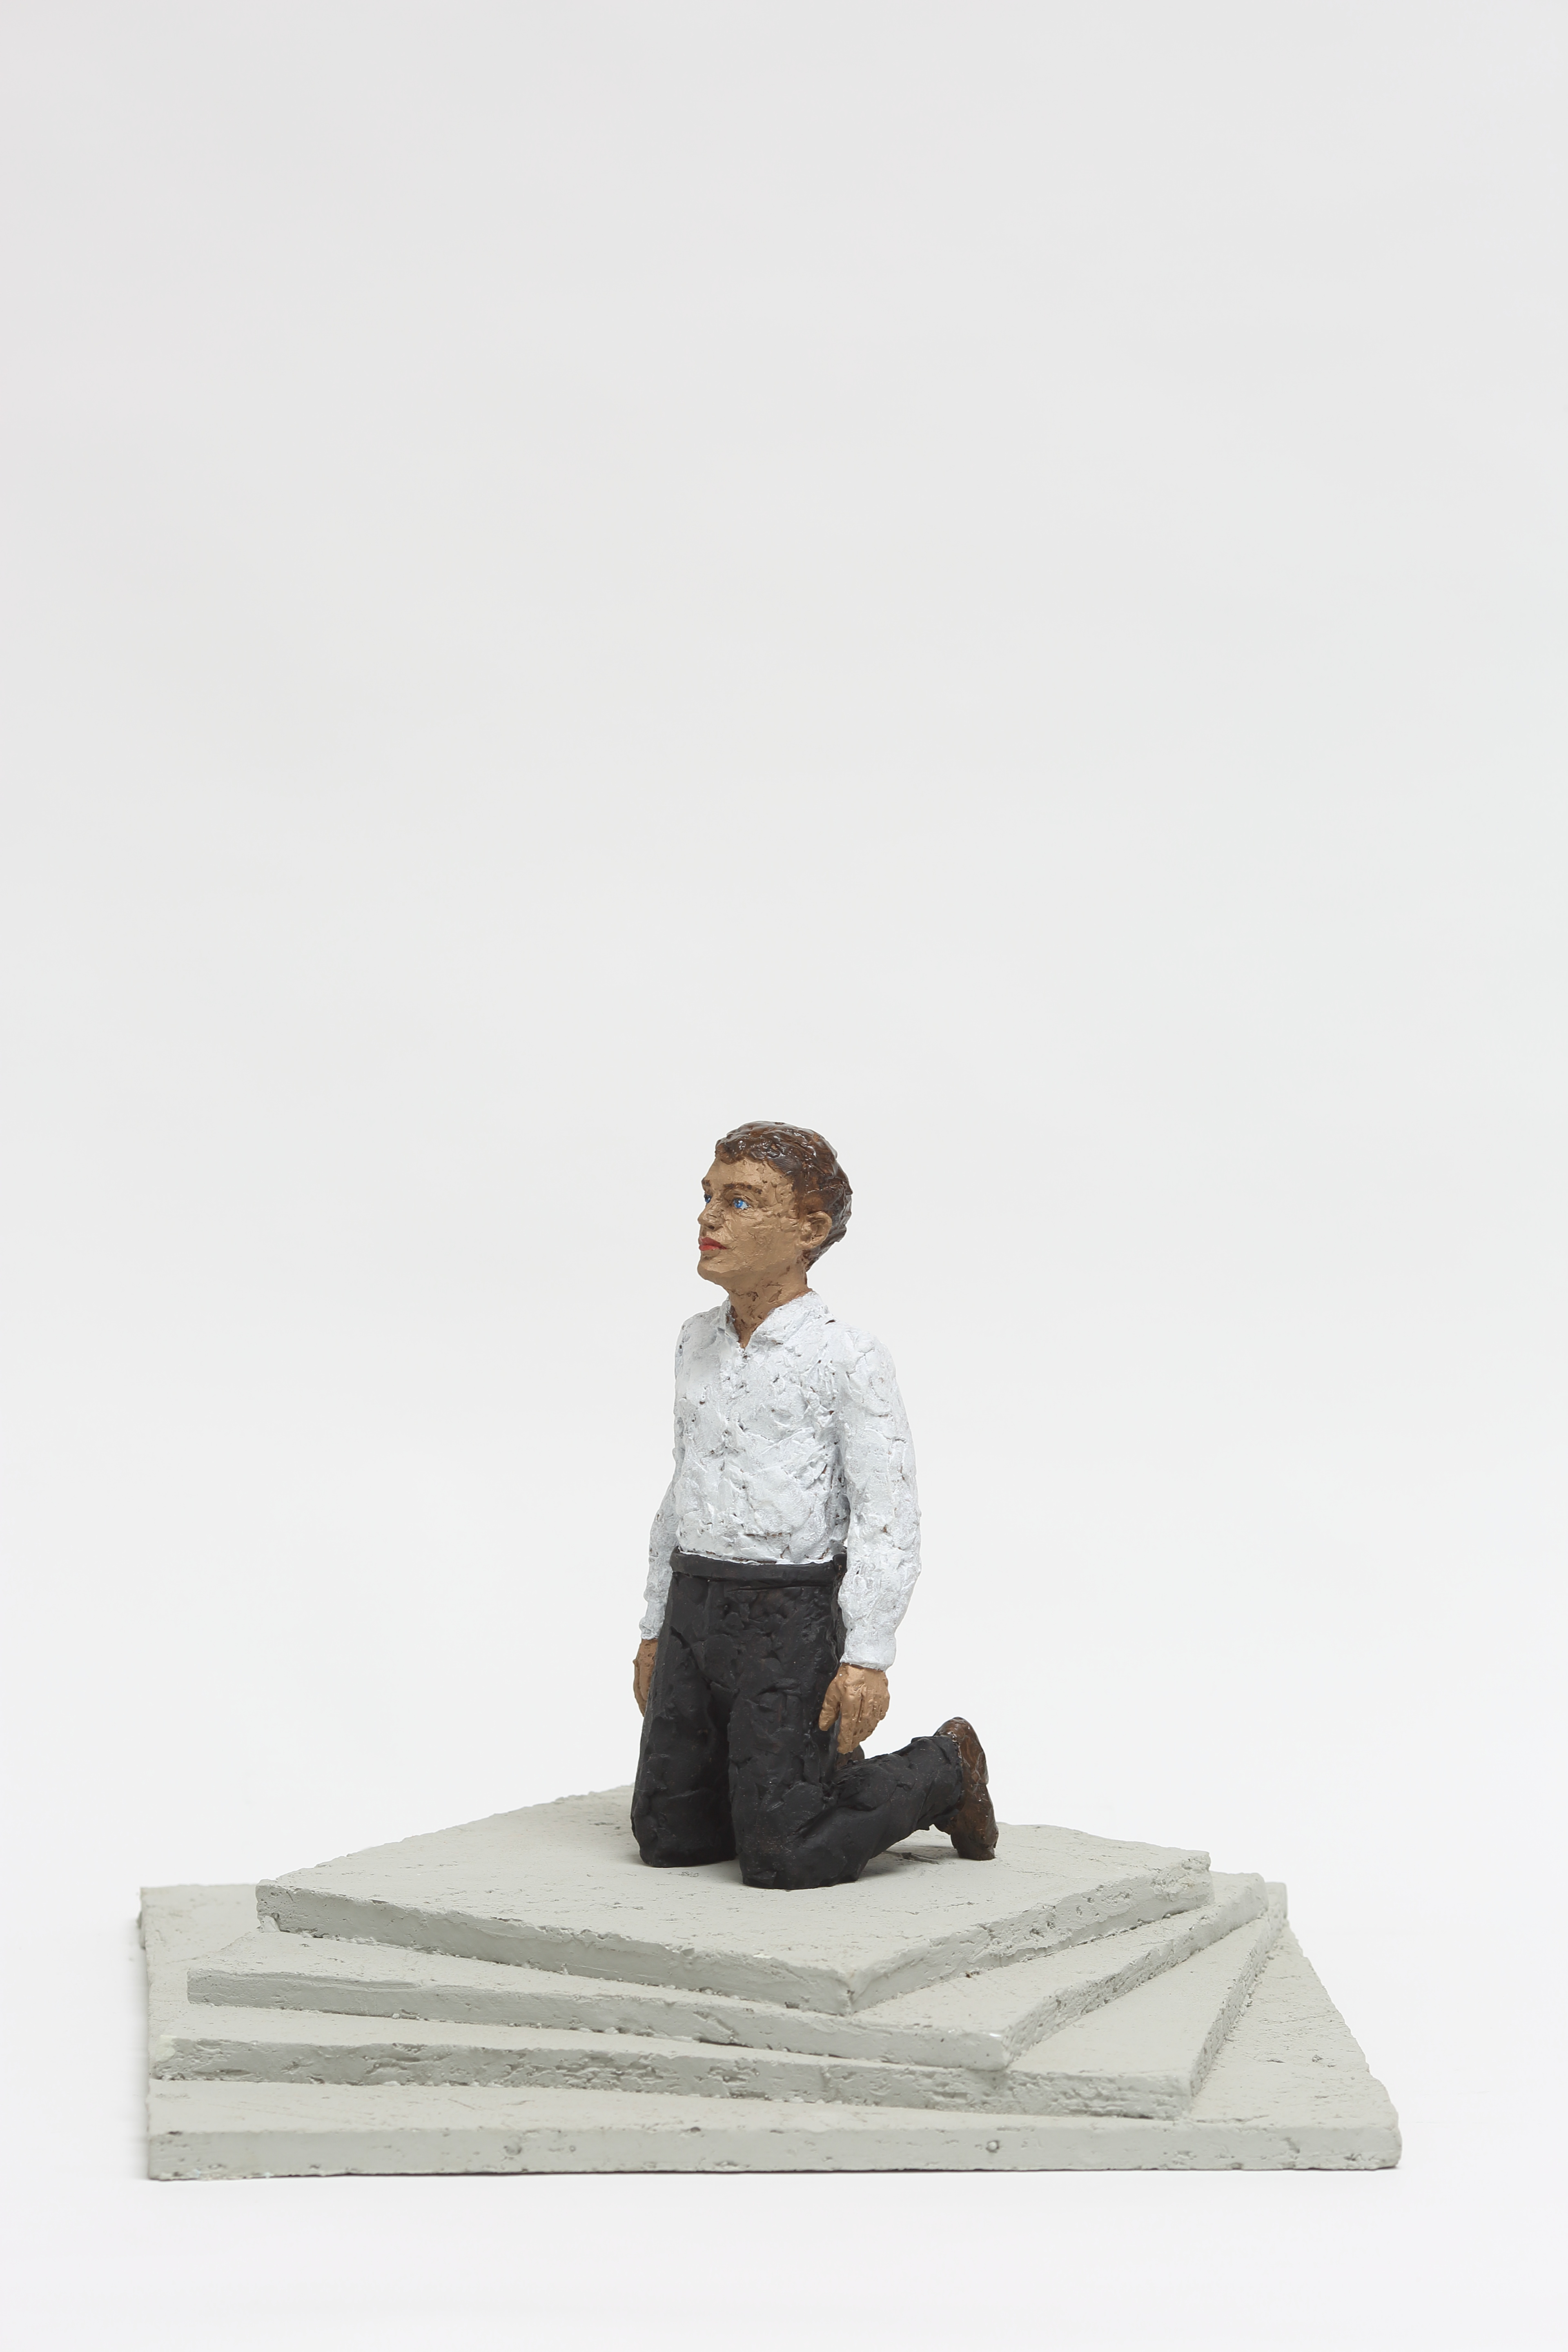 Modell zum Freiheits- und Einheitsdenkmal  - bronze, coloured, Socket: Epoxy and quartz sand - 2011 - 33 x 45 x 45 cm  - 50 copies